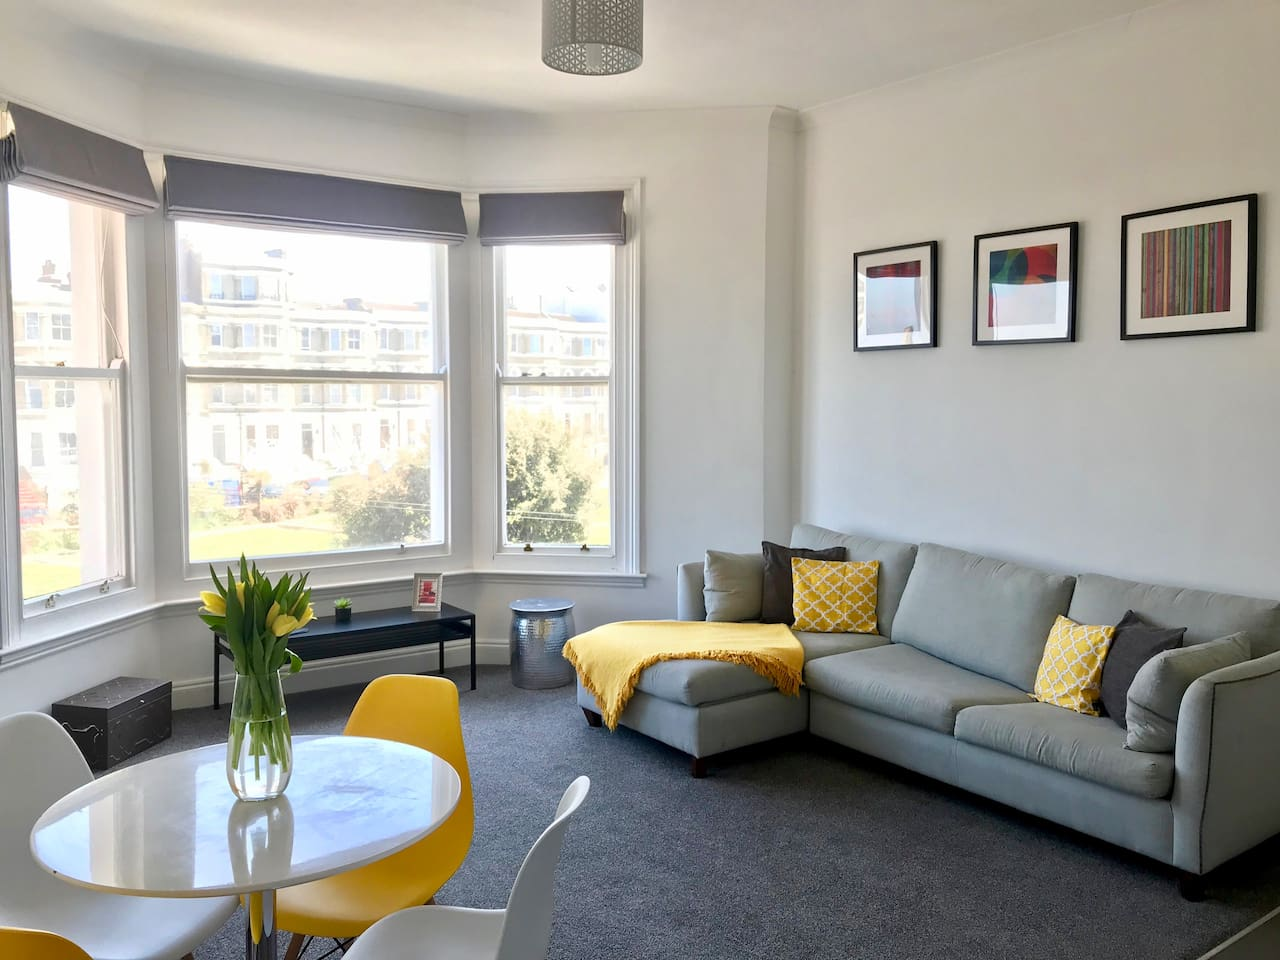 Enjoy sea views from the sofa! Open plan living room / kitchen with lovely views over Dalby Square gardens, Edwardian buildings and the sea.